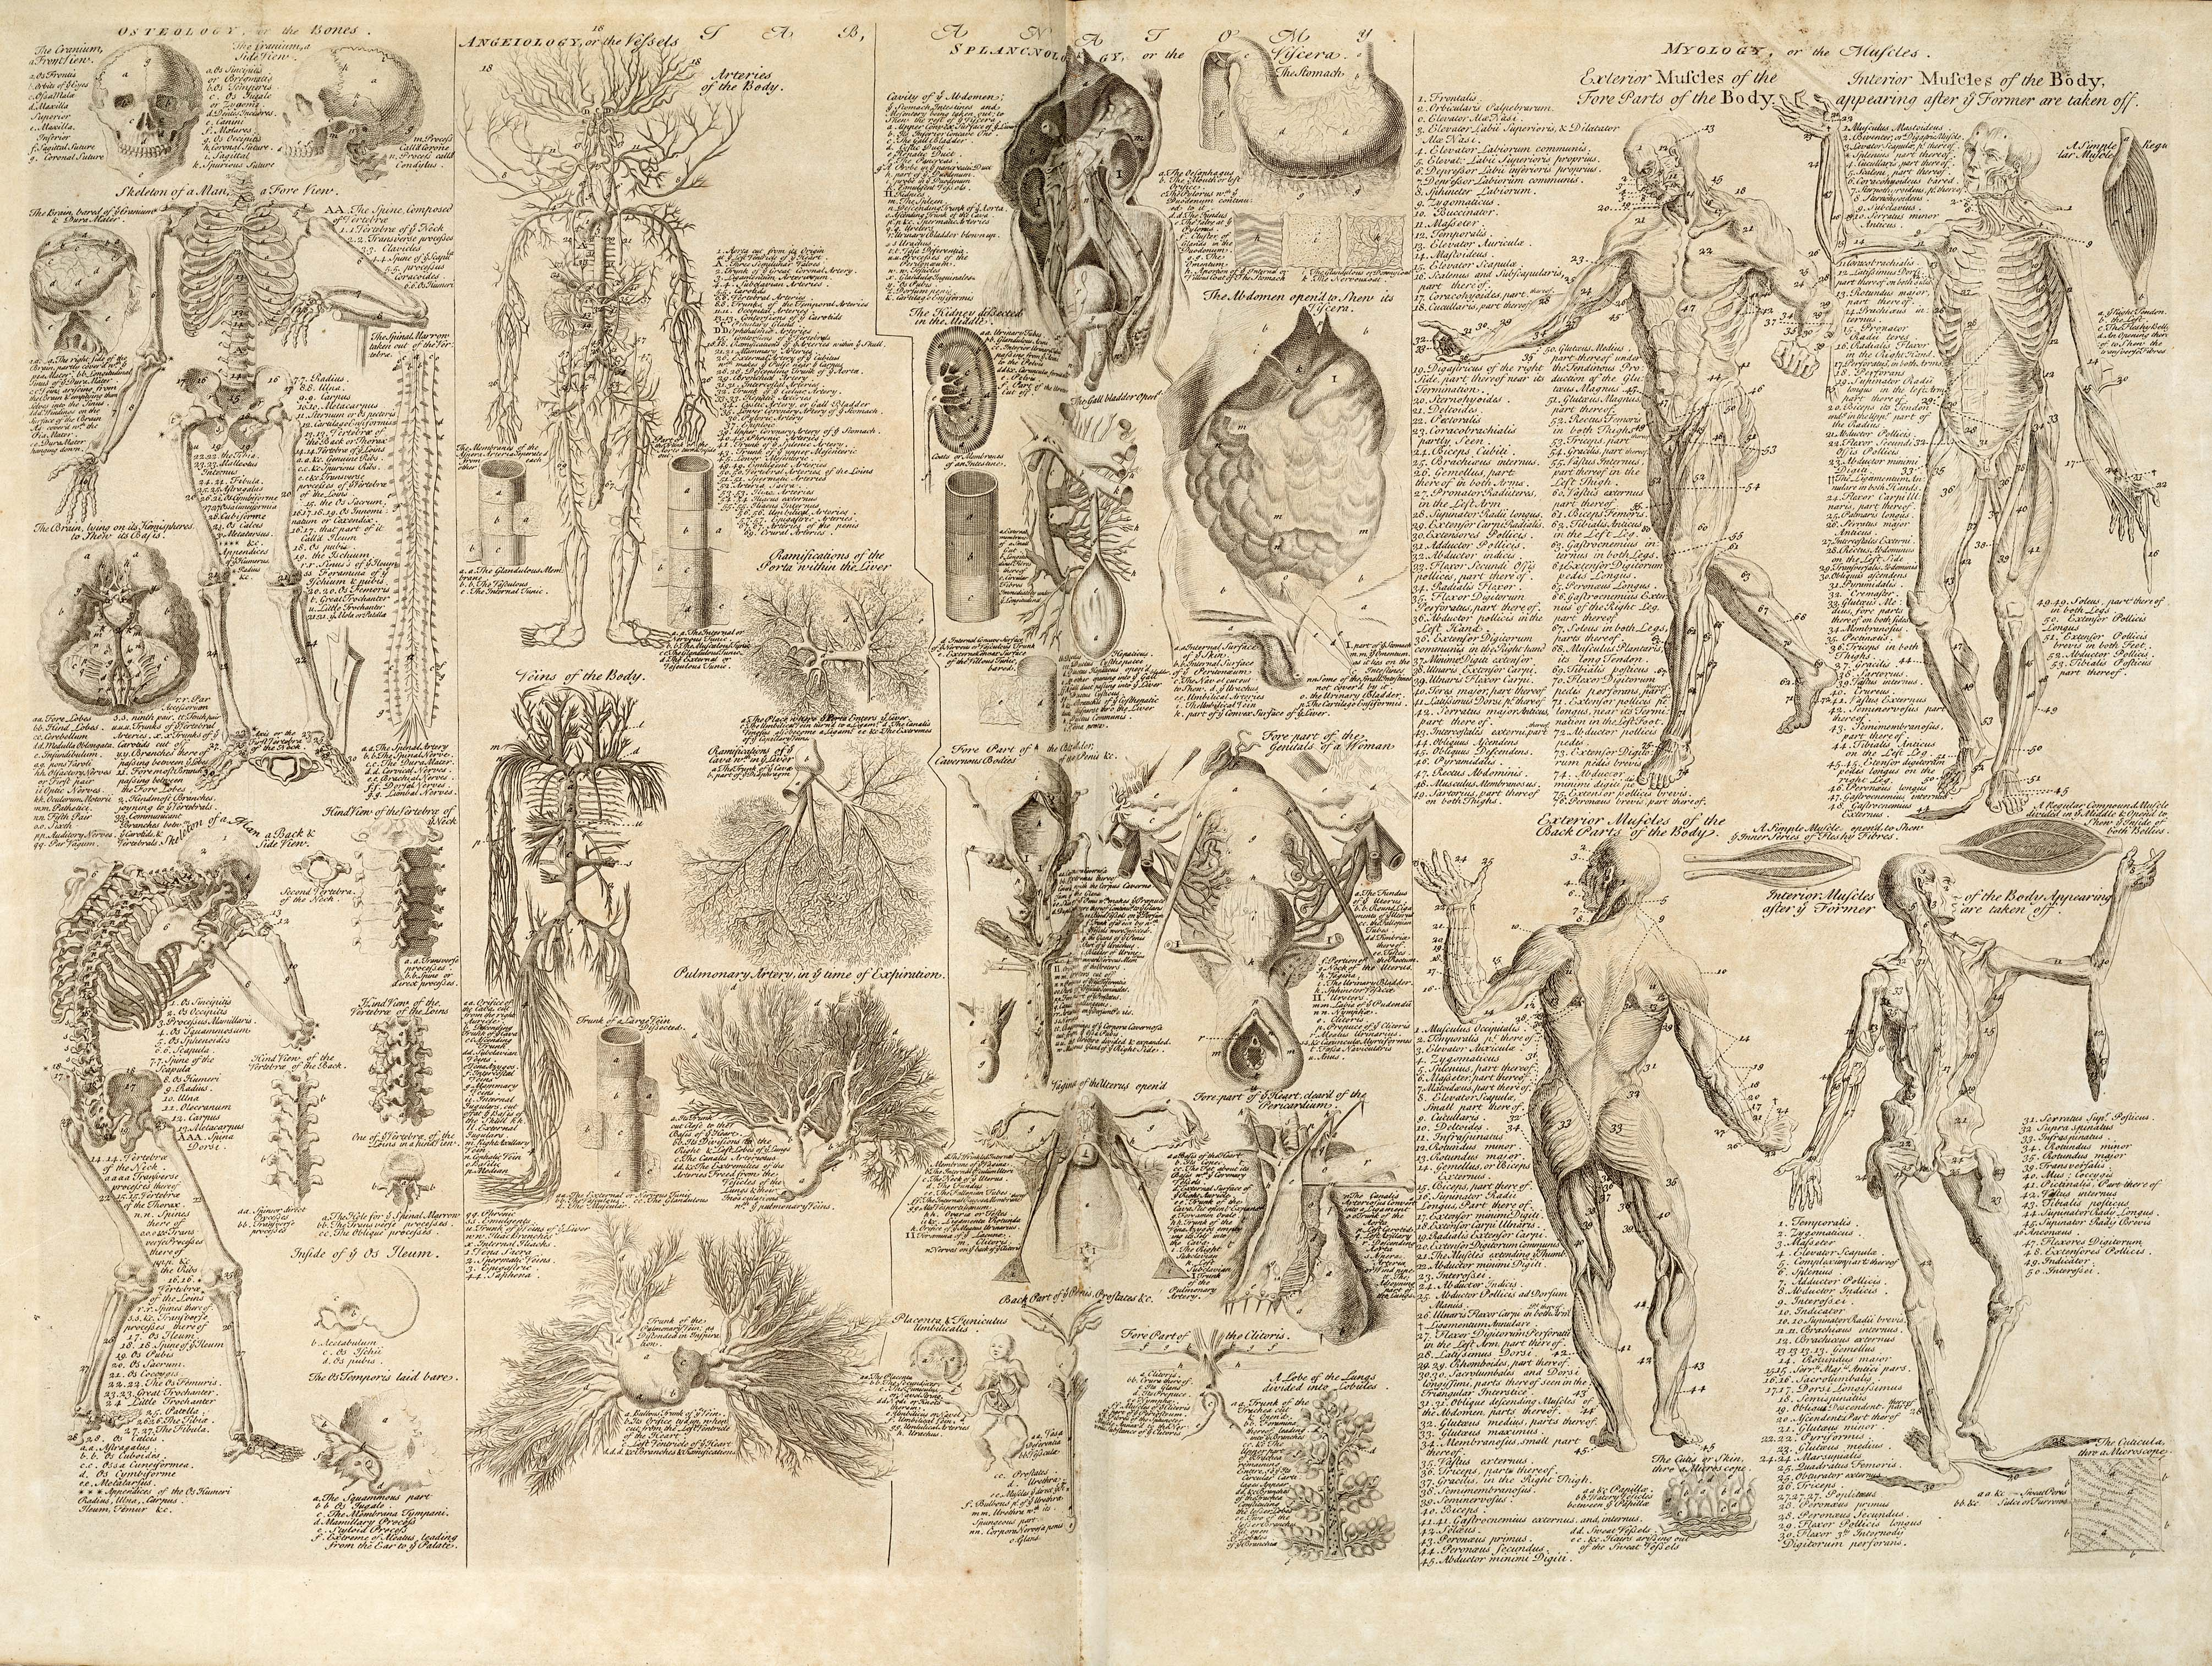 Fileanatomical Chart Cyclopaedia 1728 Volume 1 Between Pages 84